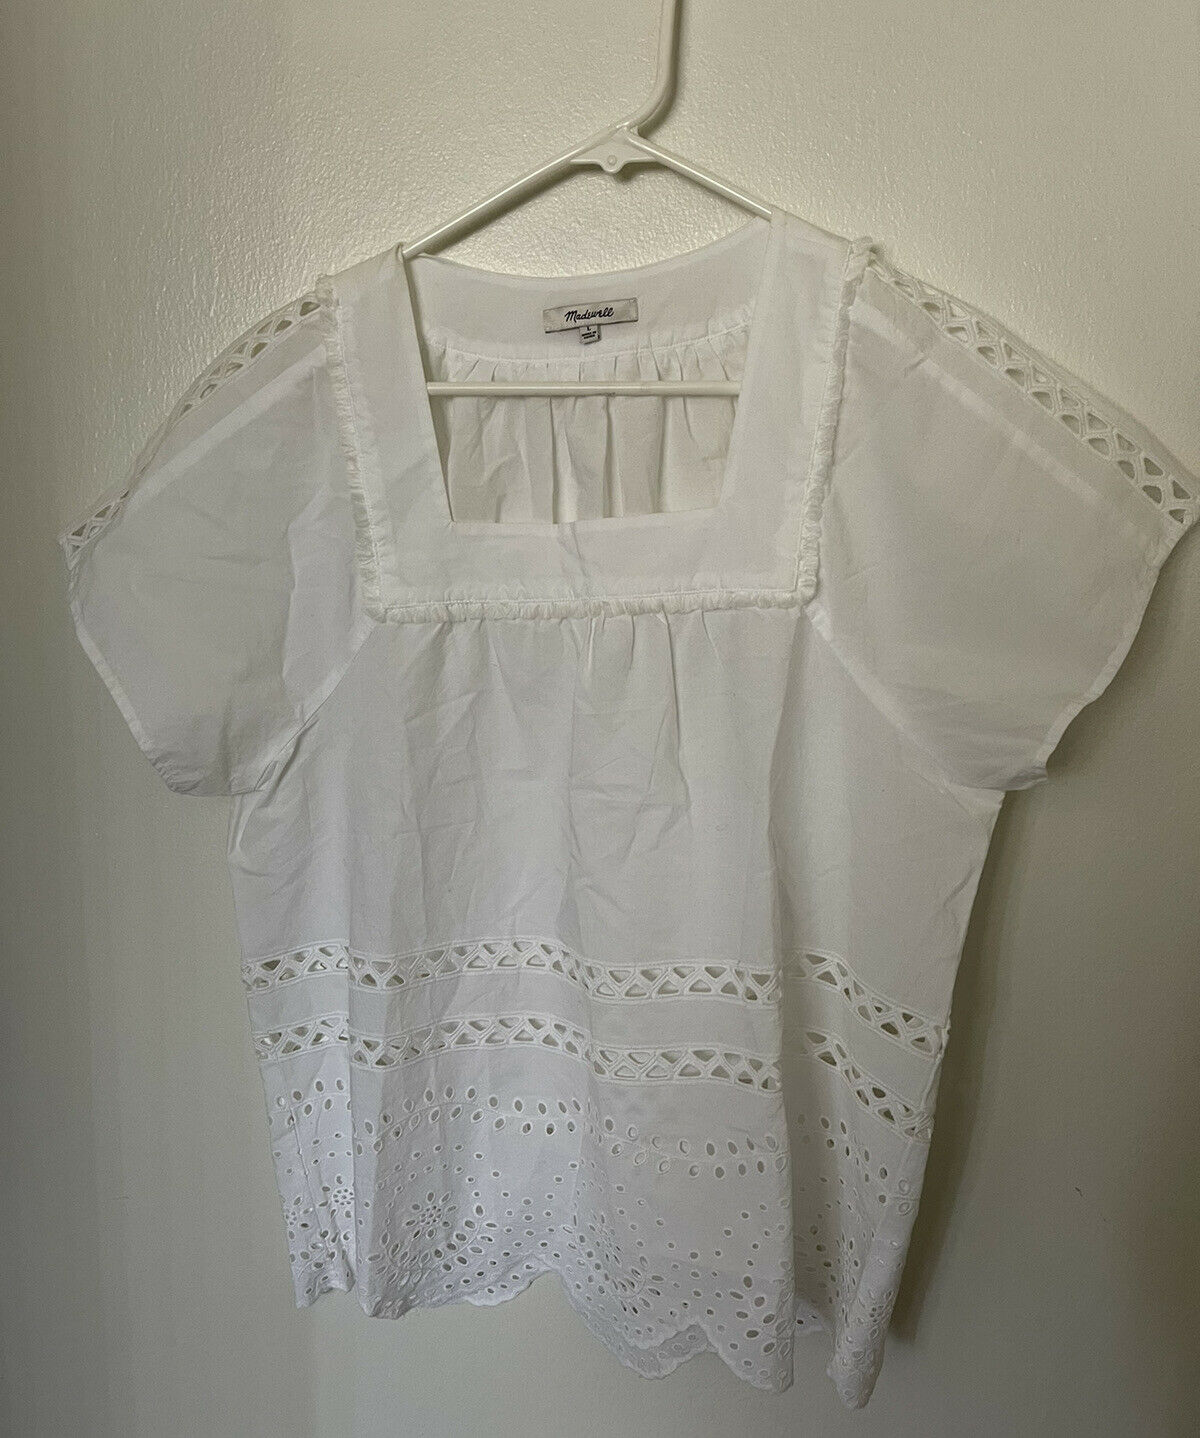 Madewell Top Womens Size L Cotton White Eyelet An… - image 1